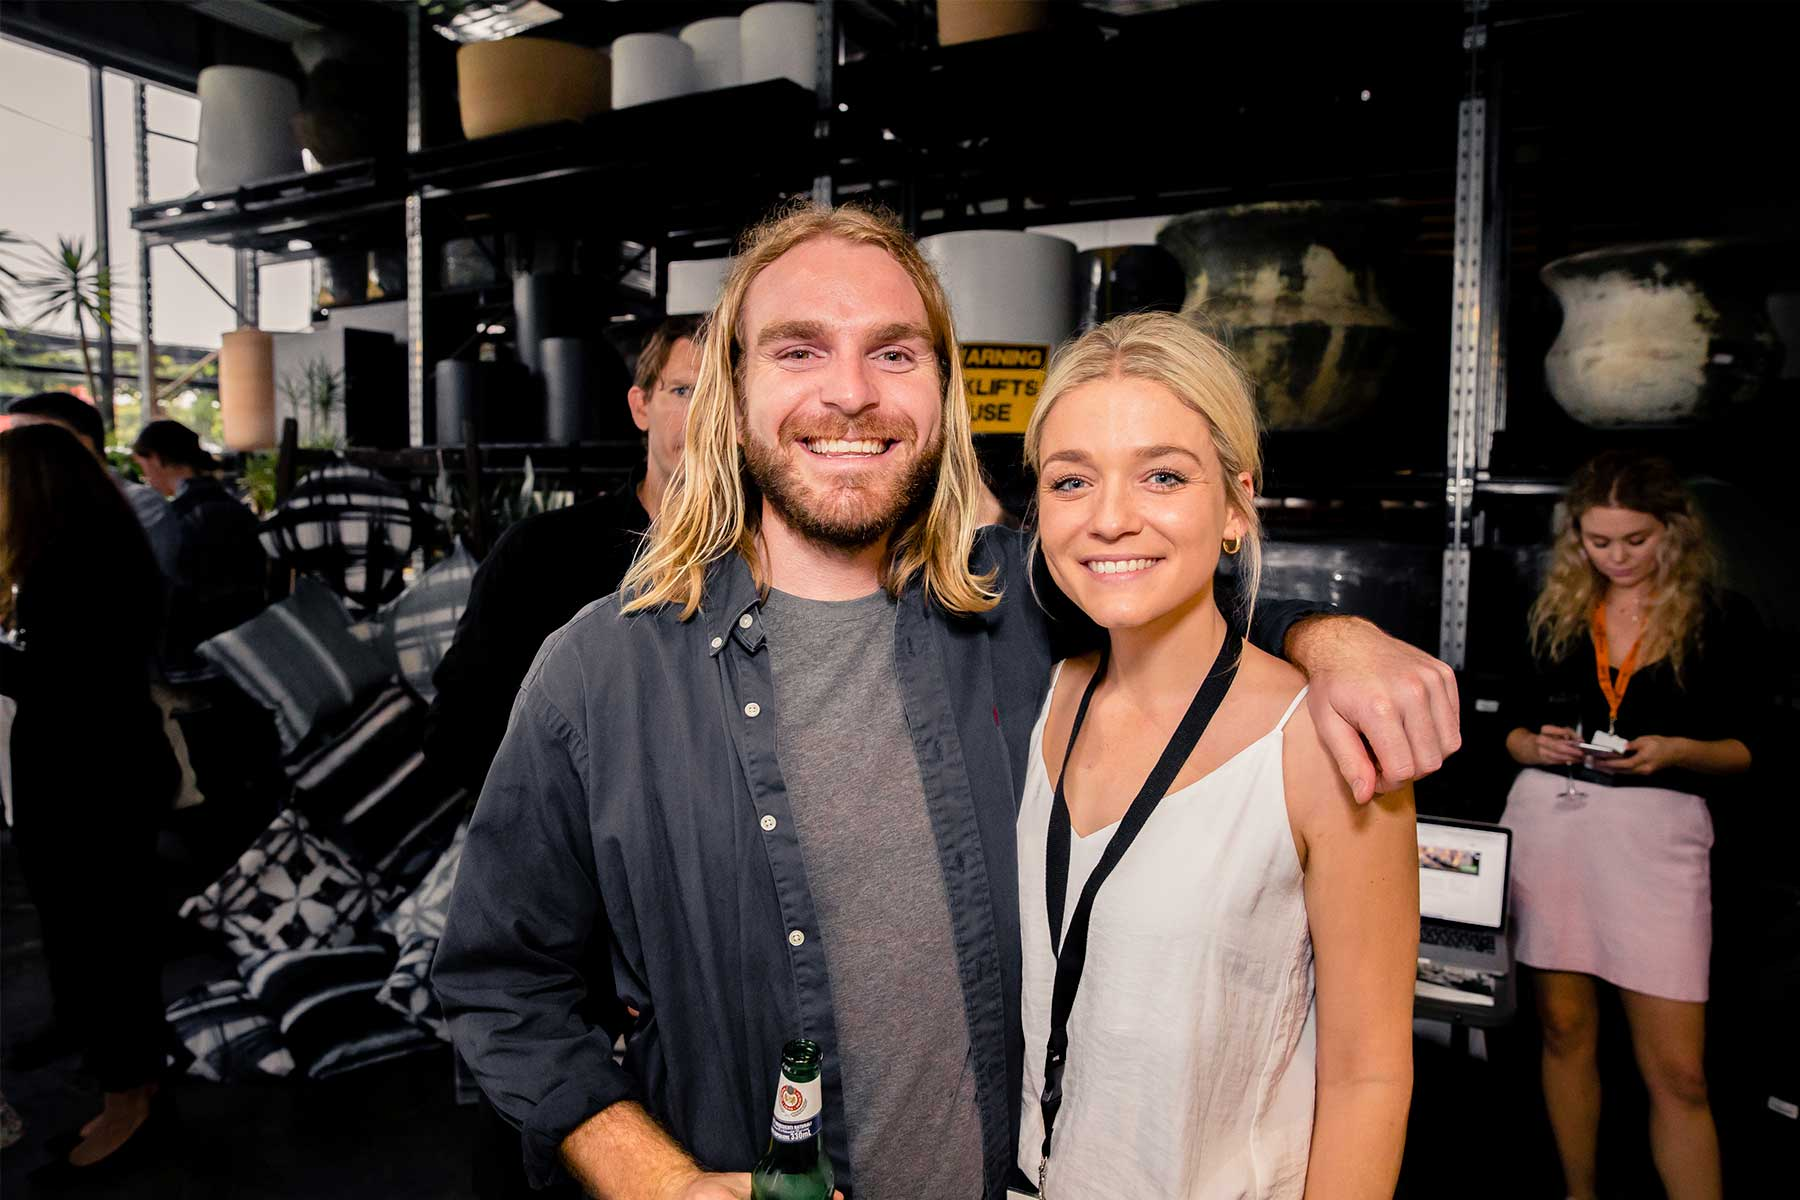 Hamish Chapman from ARD and Lilli Watkins from Houzz